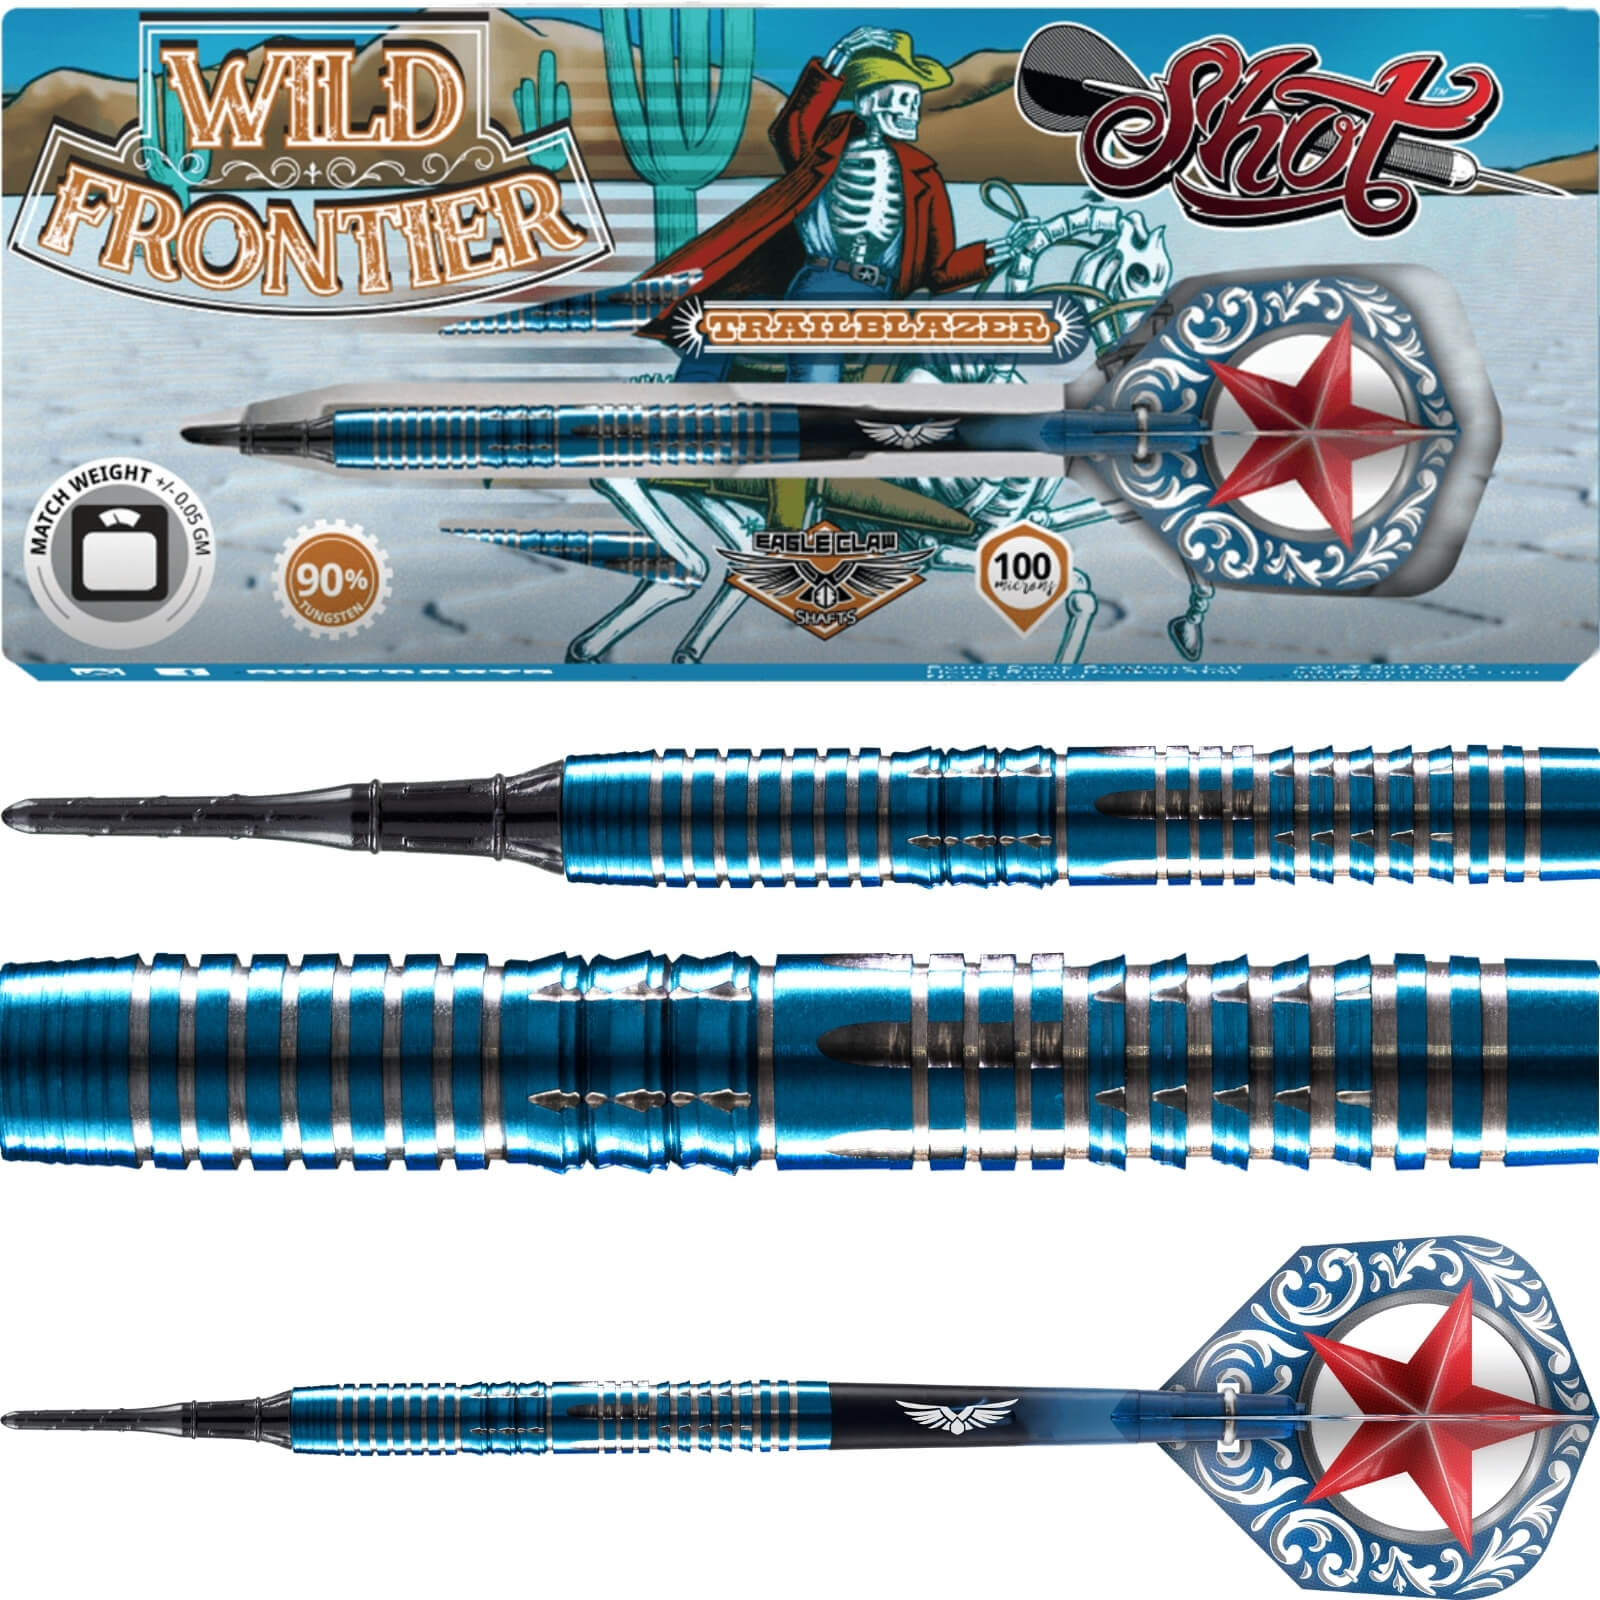 Darts - Shot - Wild Frontier Trailblazer Darts - Soft Tip - 90% Tungsten - 16g 18g 20g